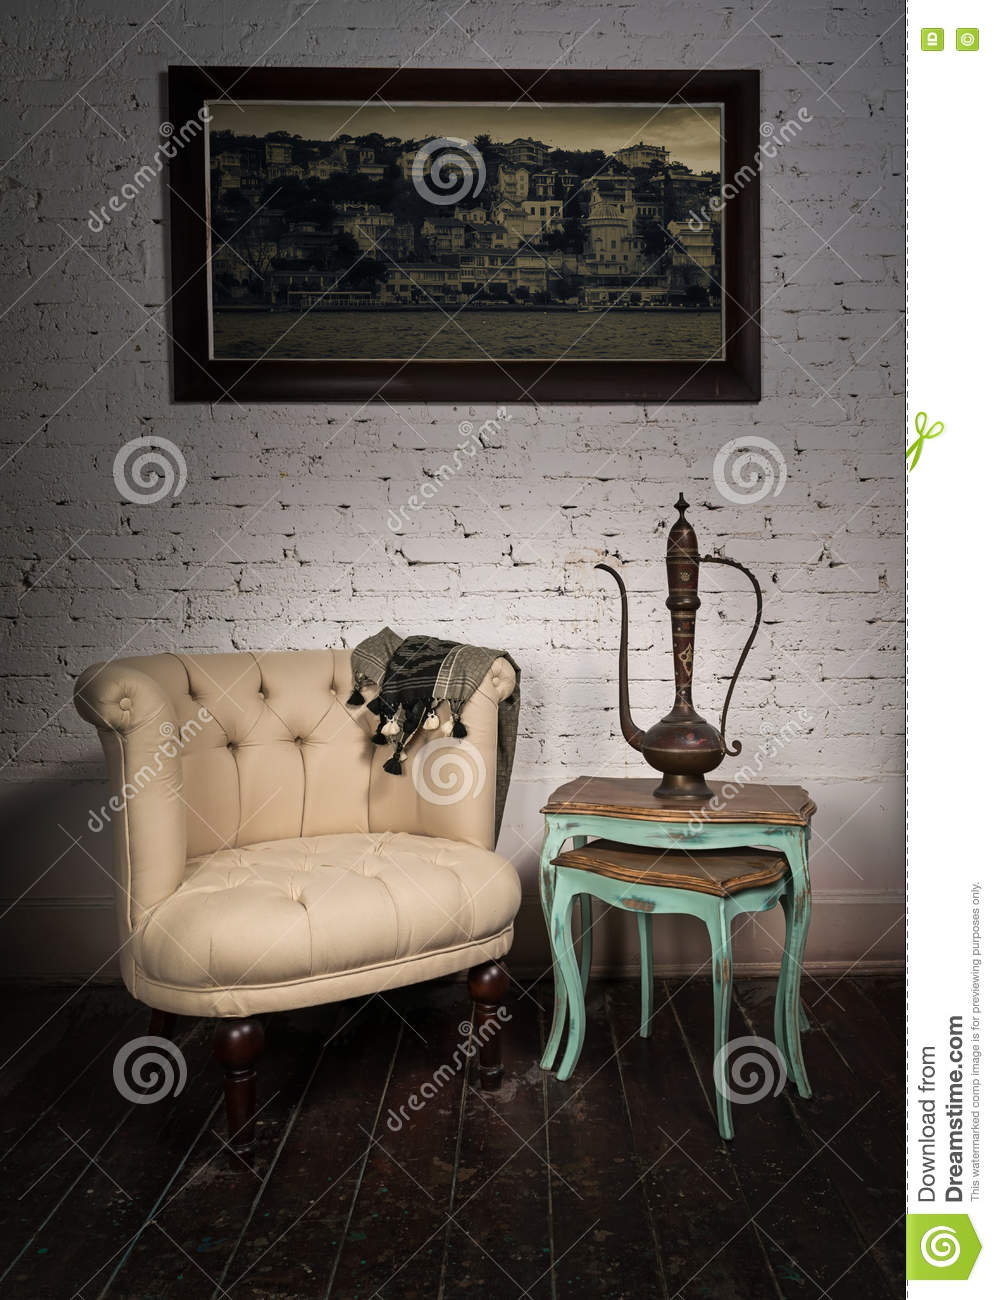 Old beige armchair, brass teapot, hanged painting and nested tables